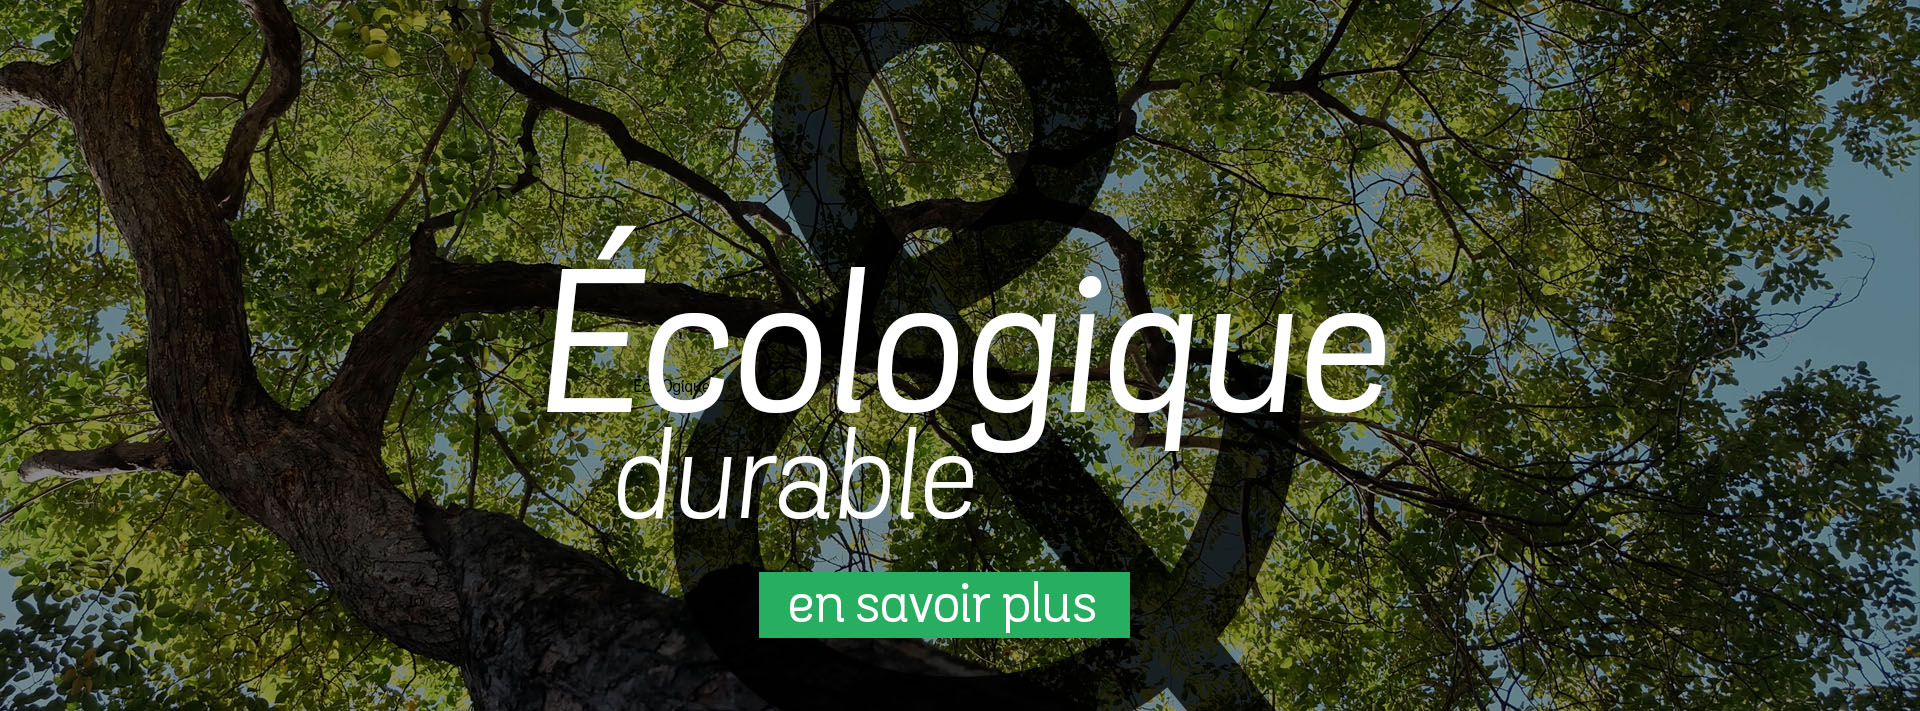 Ecologique & durable